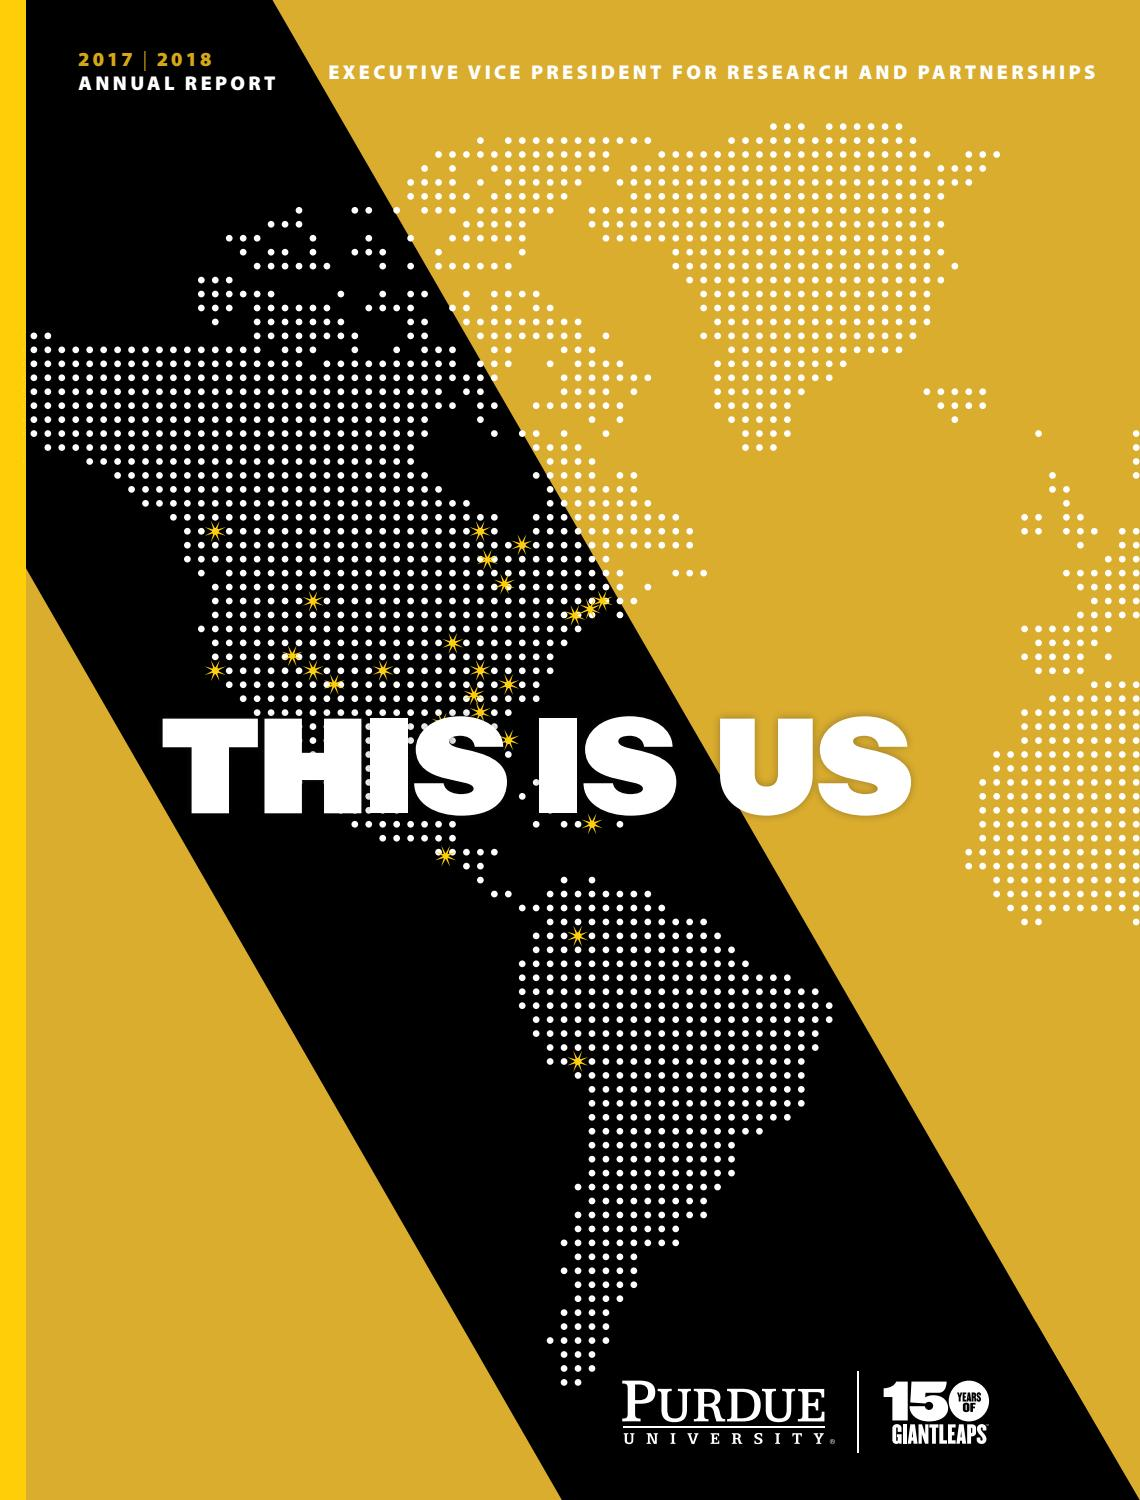 hight resolution of this is us 2017 2018 evprp annual report by purdue university office of the executive vice president for research and partnerships issuu